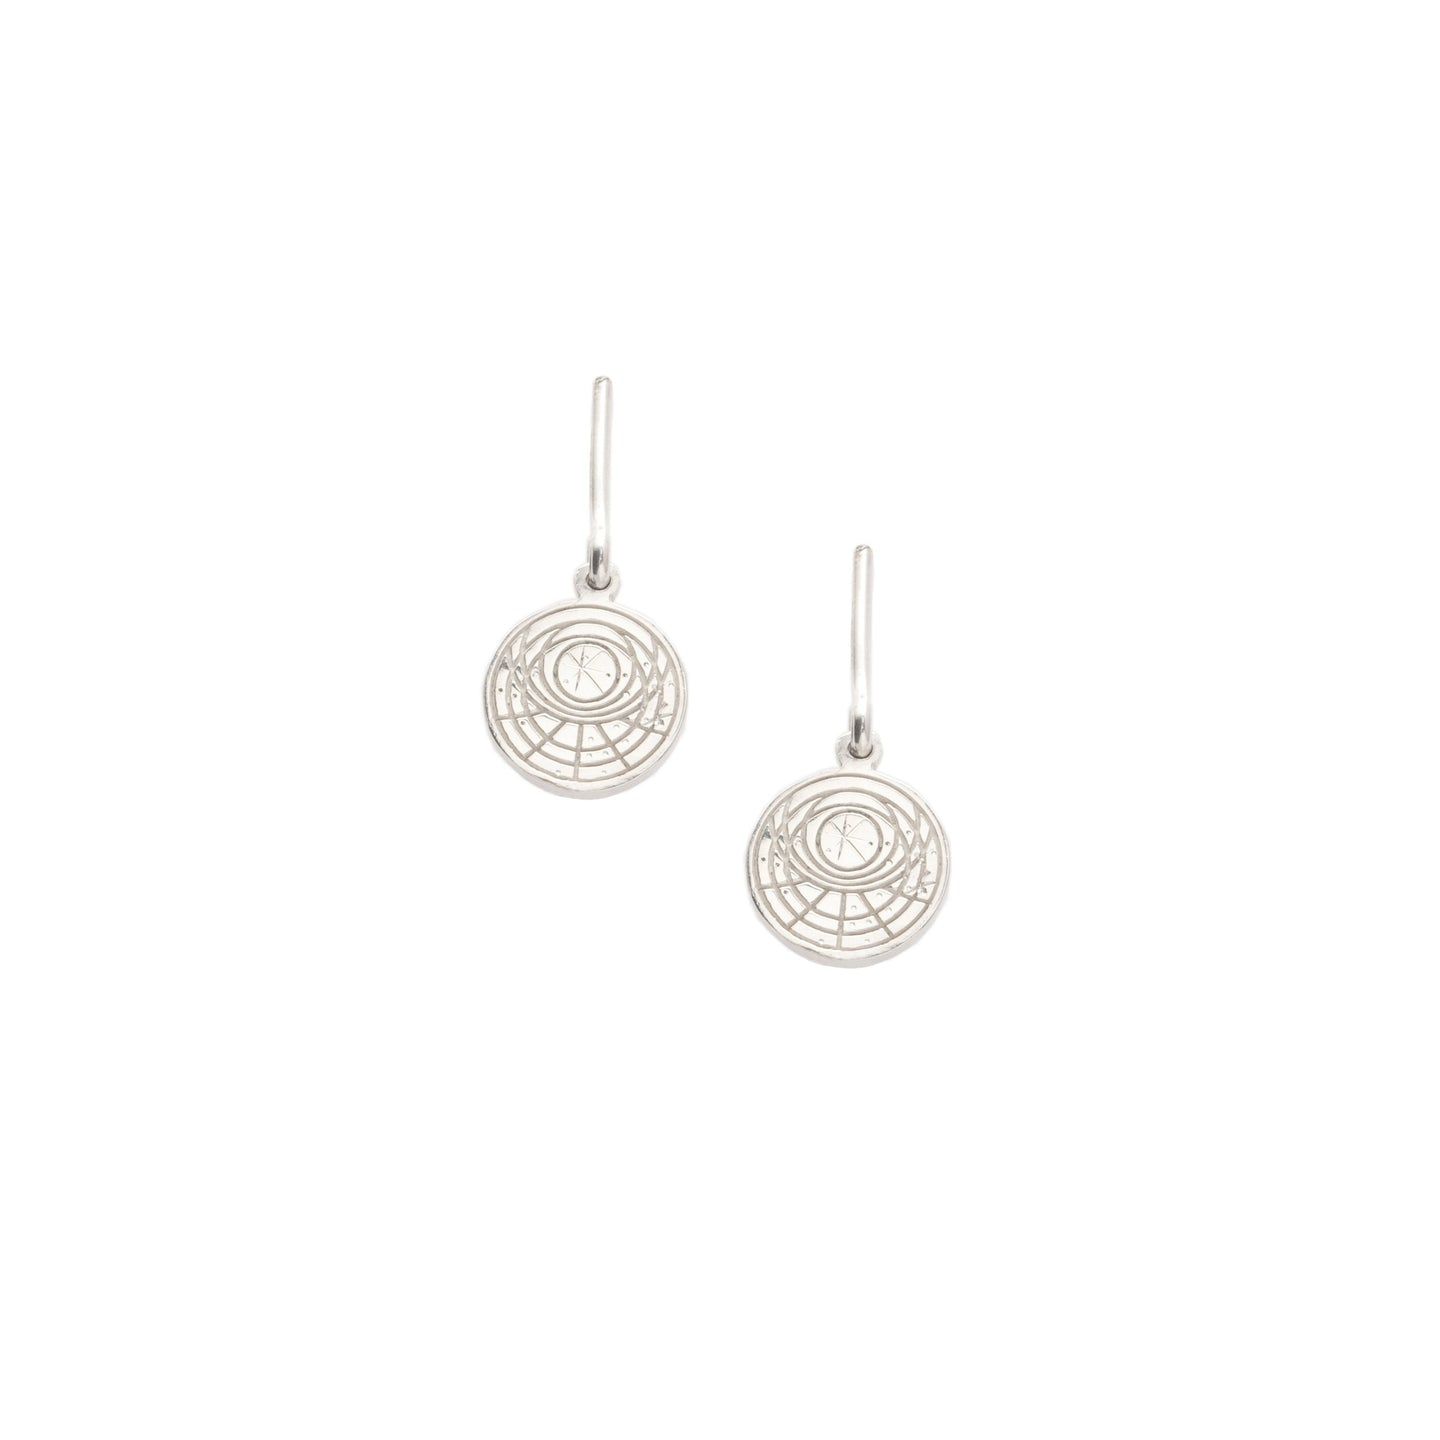 Astrolabe and Bar Earrings